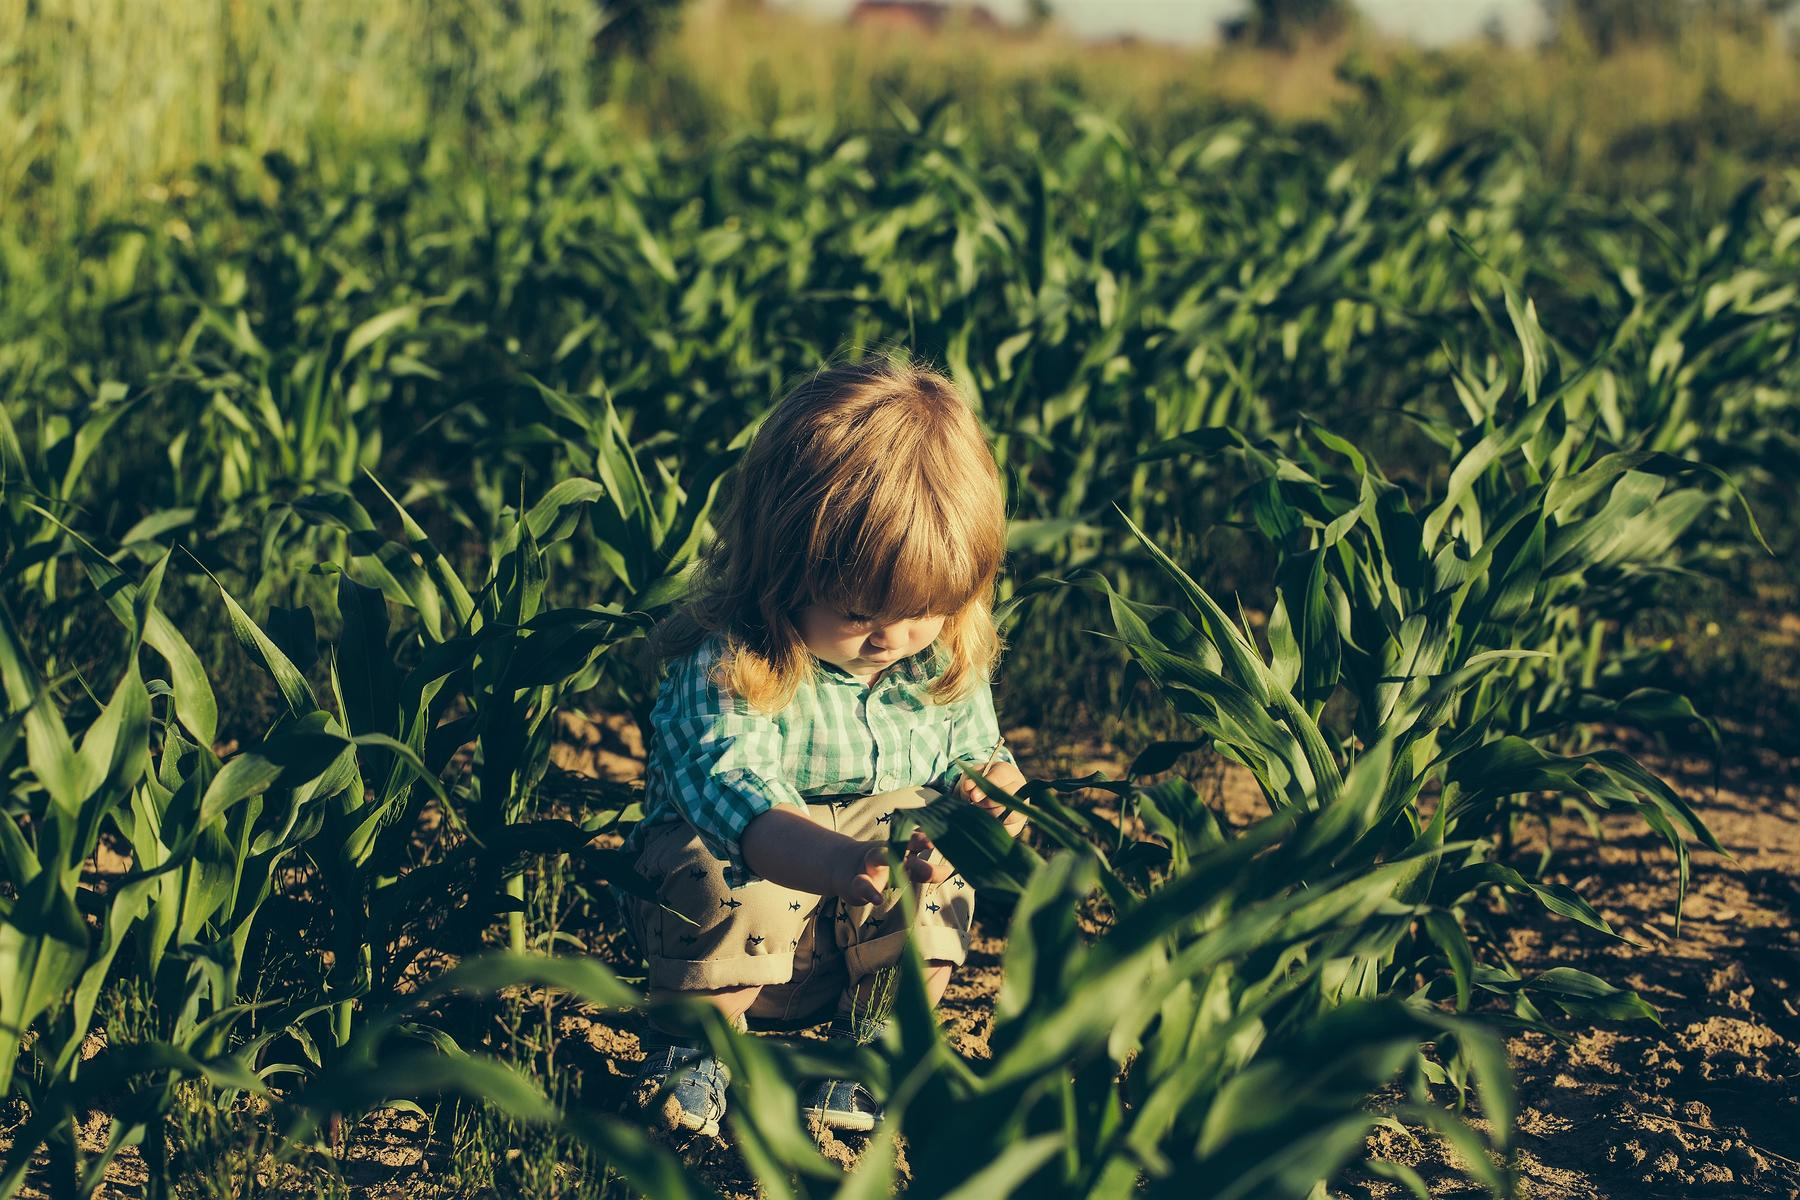 Missing 3-Year-Old Girl Found Sleeping in Cornfield After 12-Hour Search—With Loyal Dog by Her Side